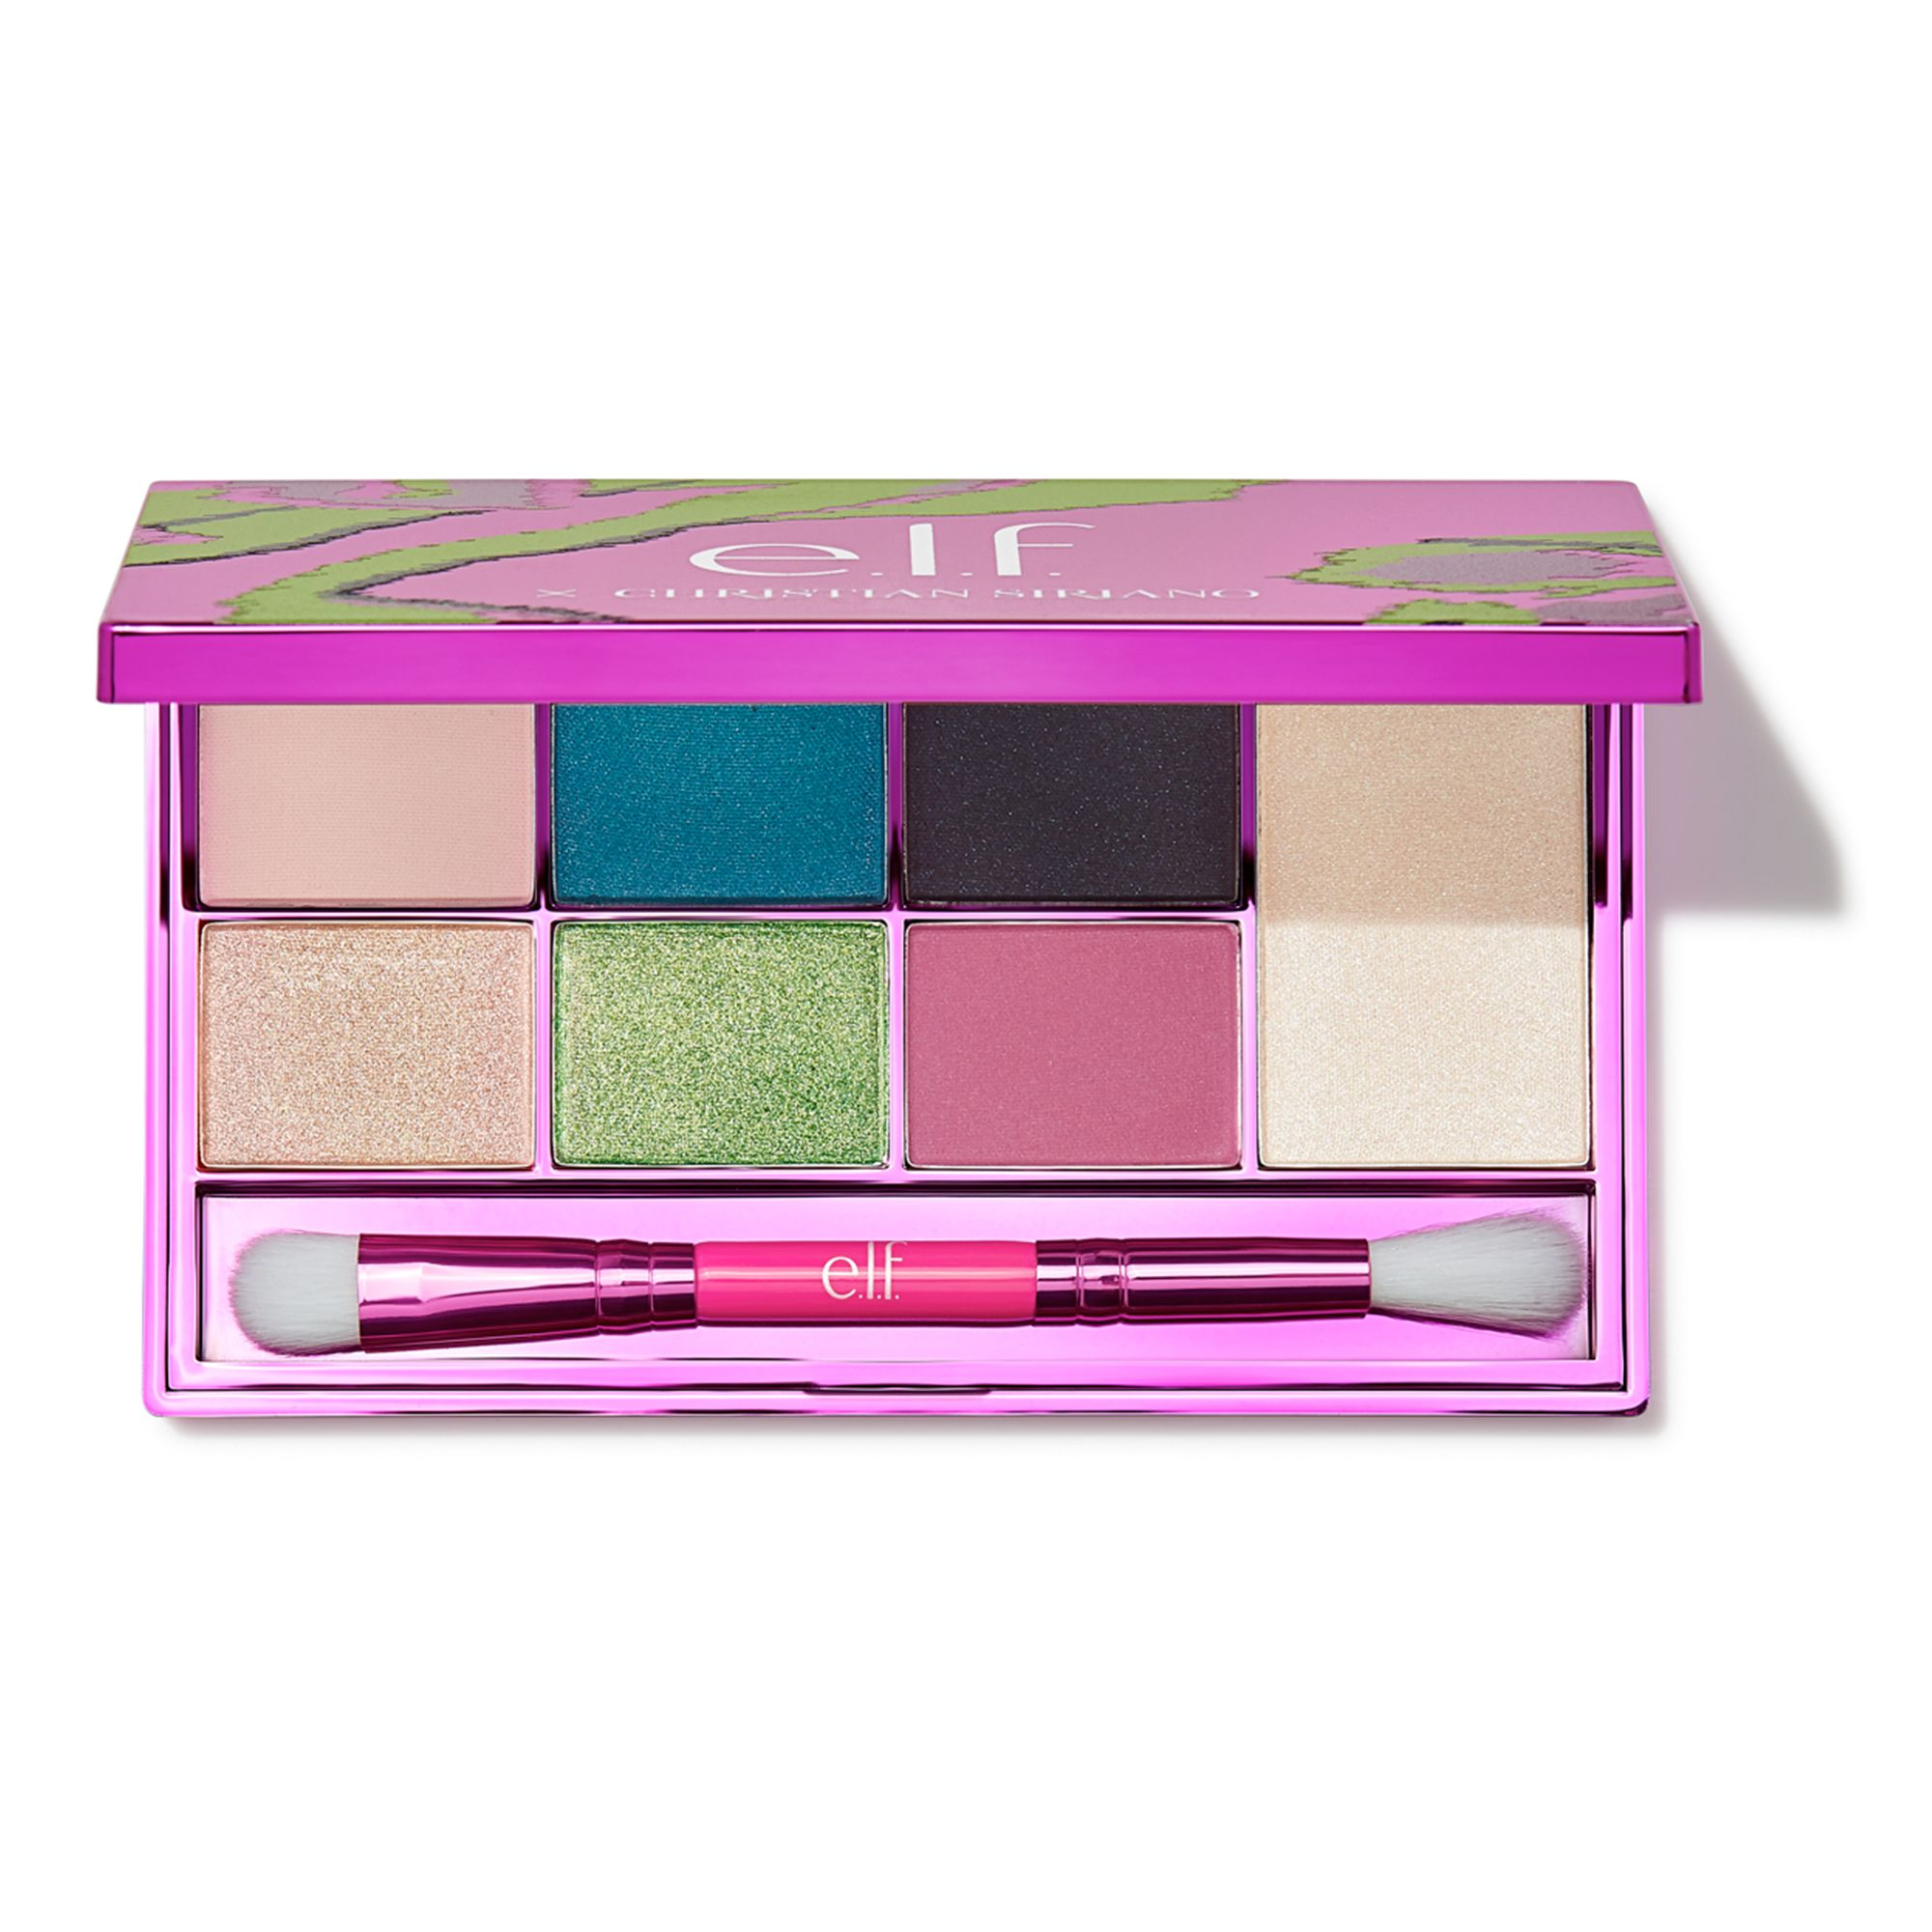 ELF Cosmetics   Christian Siriano Eyeshadow Palette